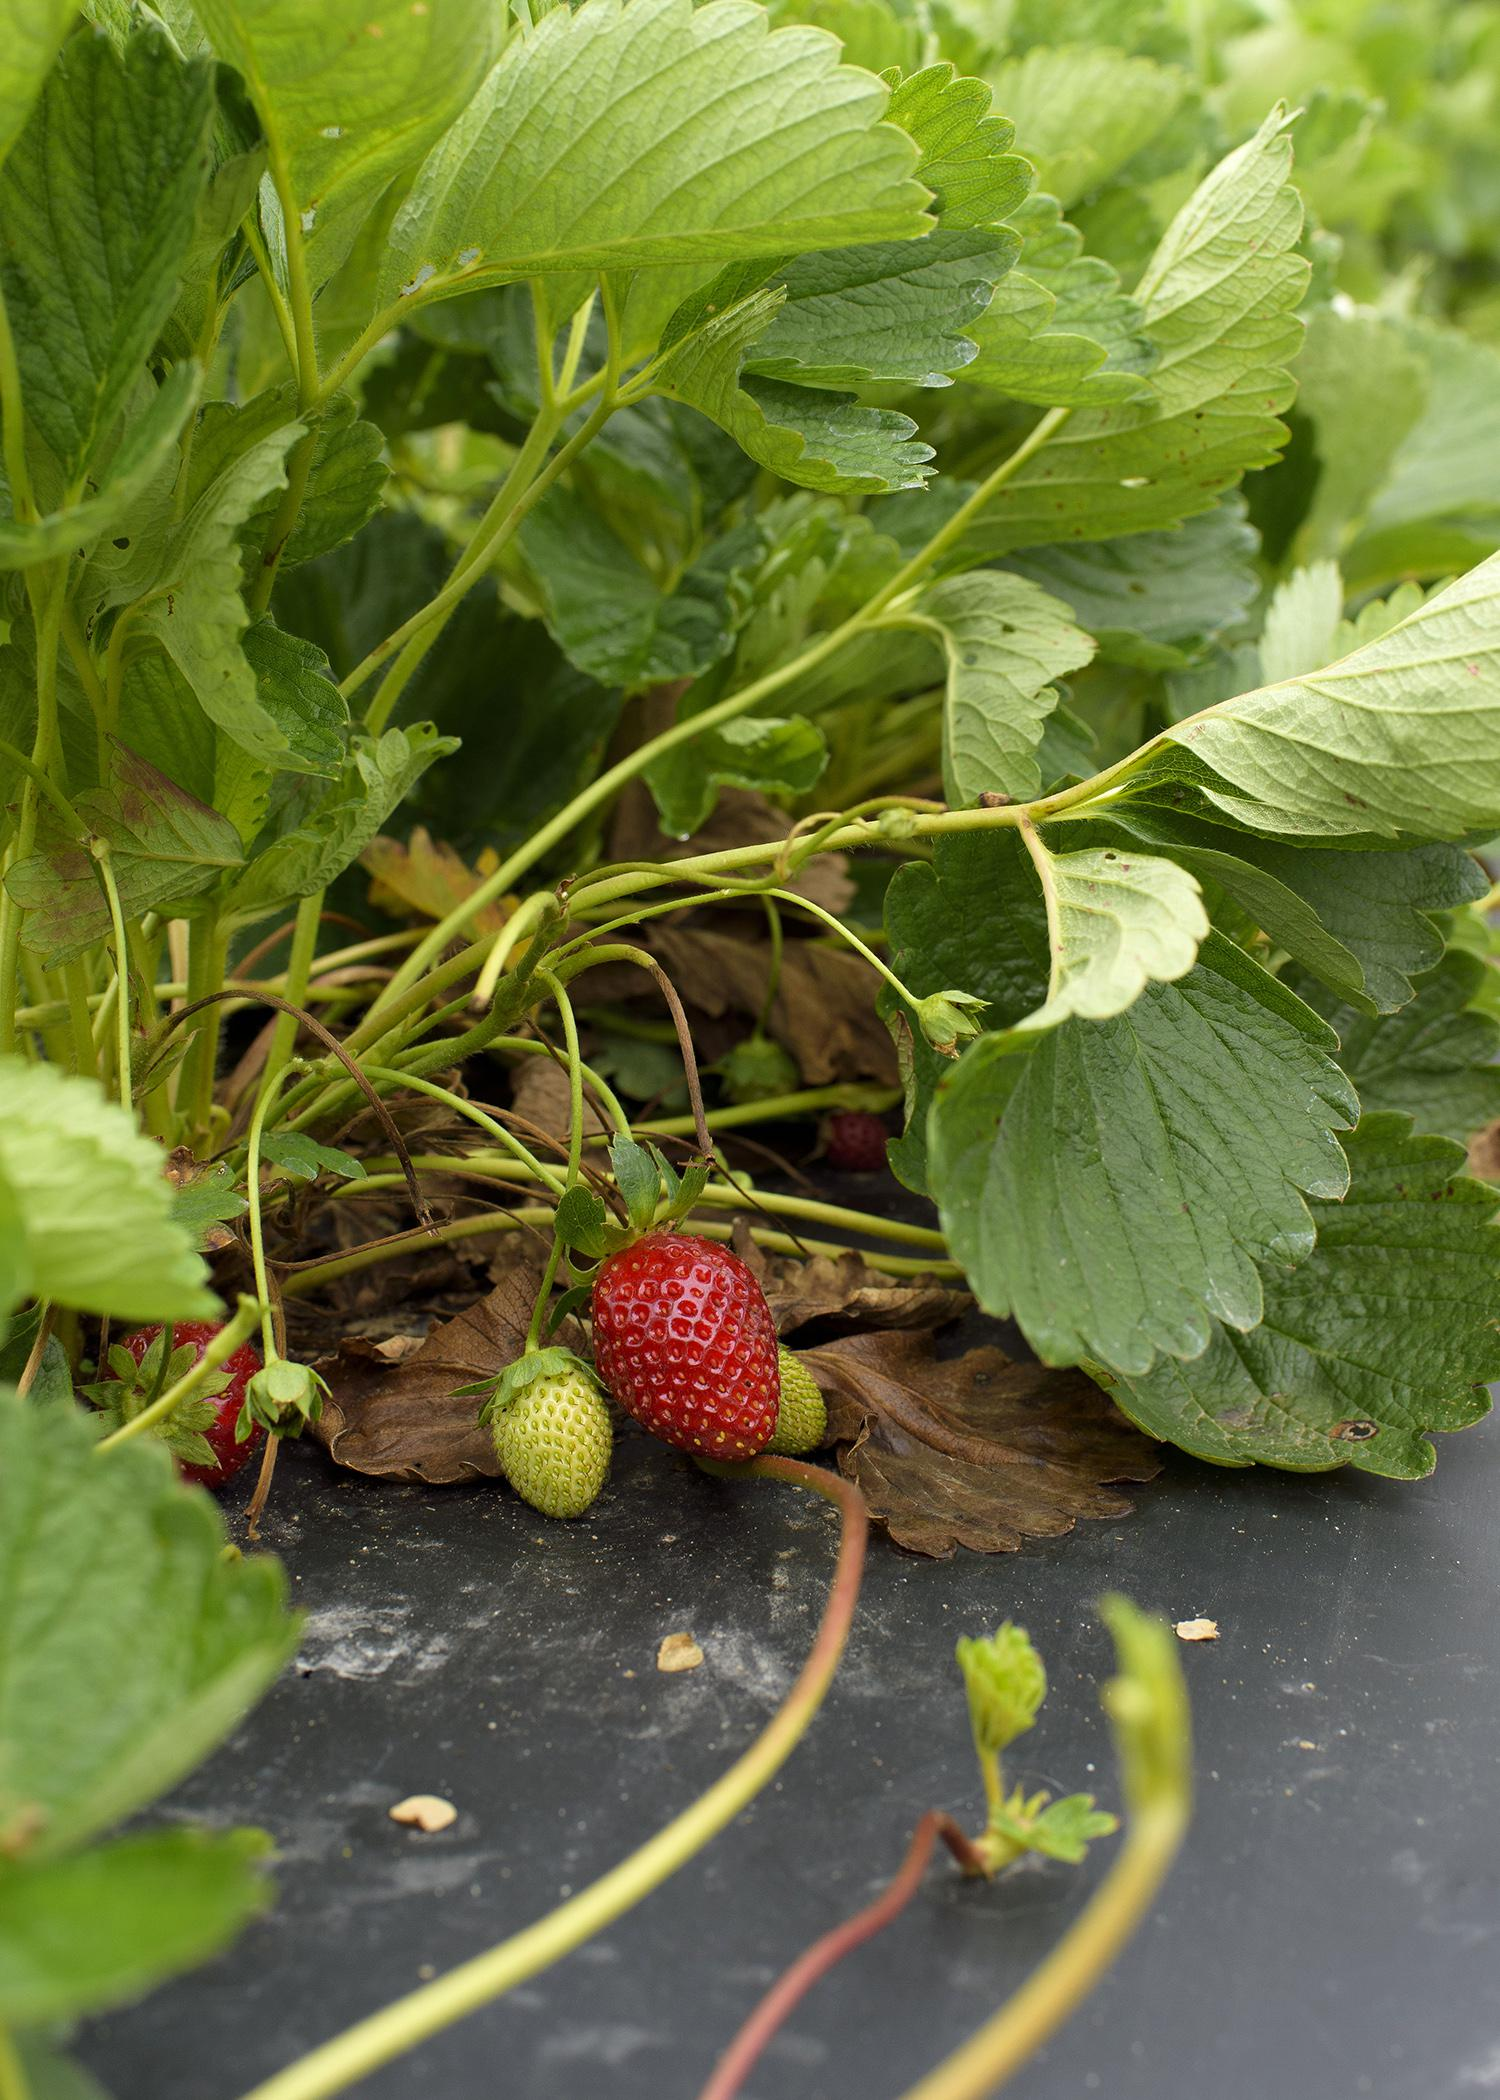 Strawberries at Lazy U Farm in Macon, Mississippi, are doing well on May 21, 2015, compared to most crops in the state. Frequent spring rains combined with poor plant growth, flowering and fruit set have decreased many growers' harvests. (Photo by MSU Ag Communications/Kevin Hudson)